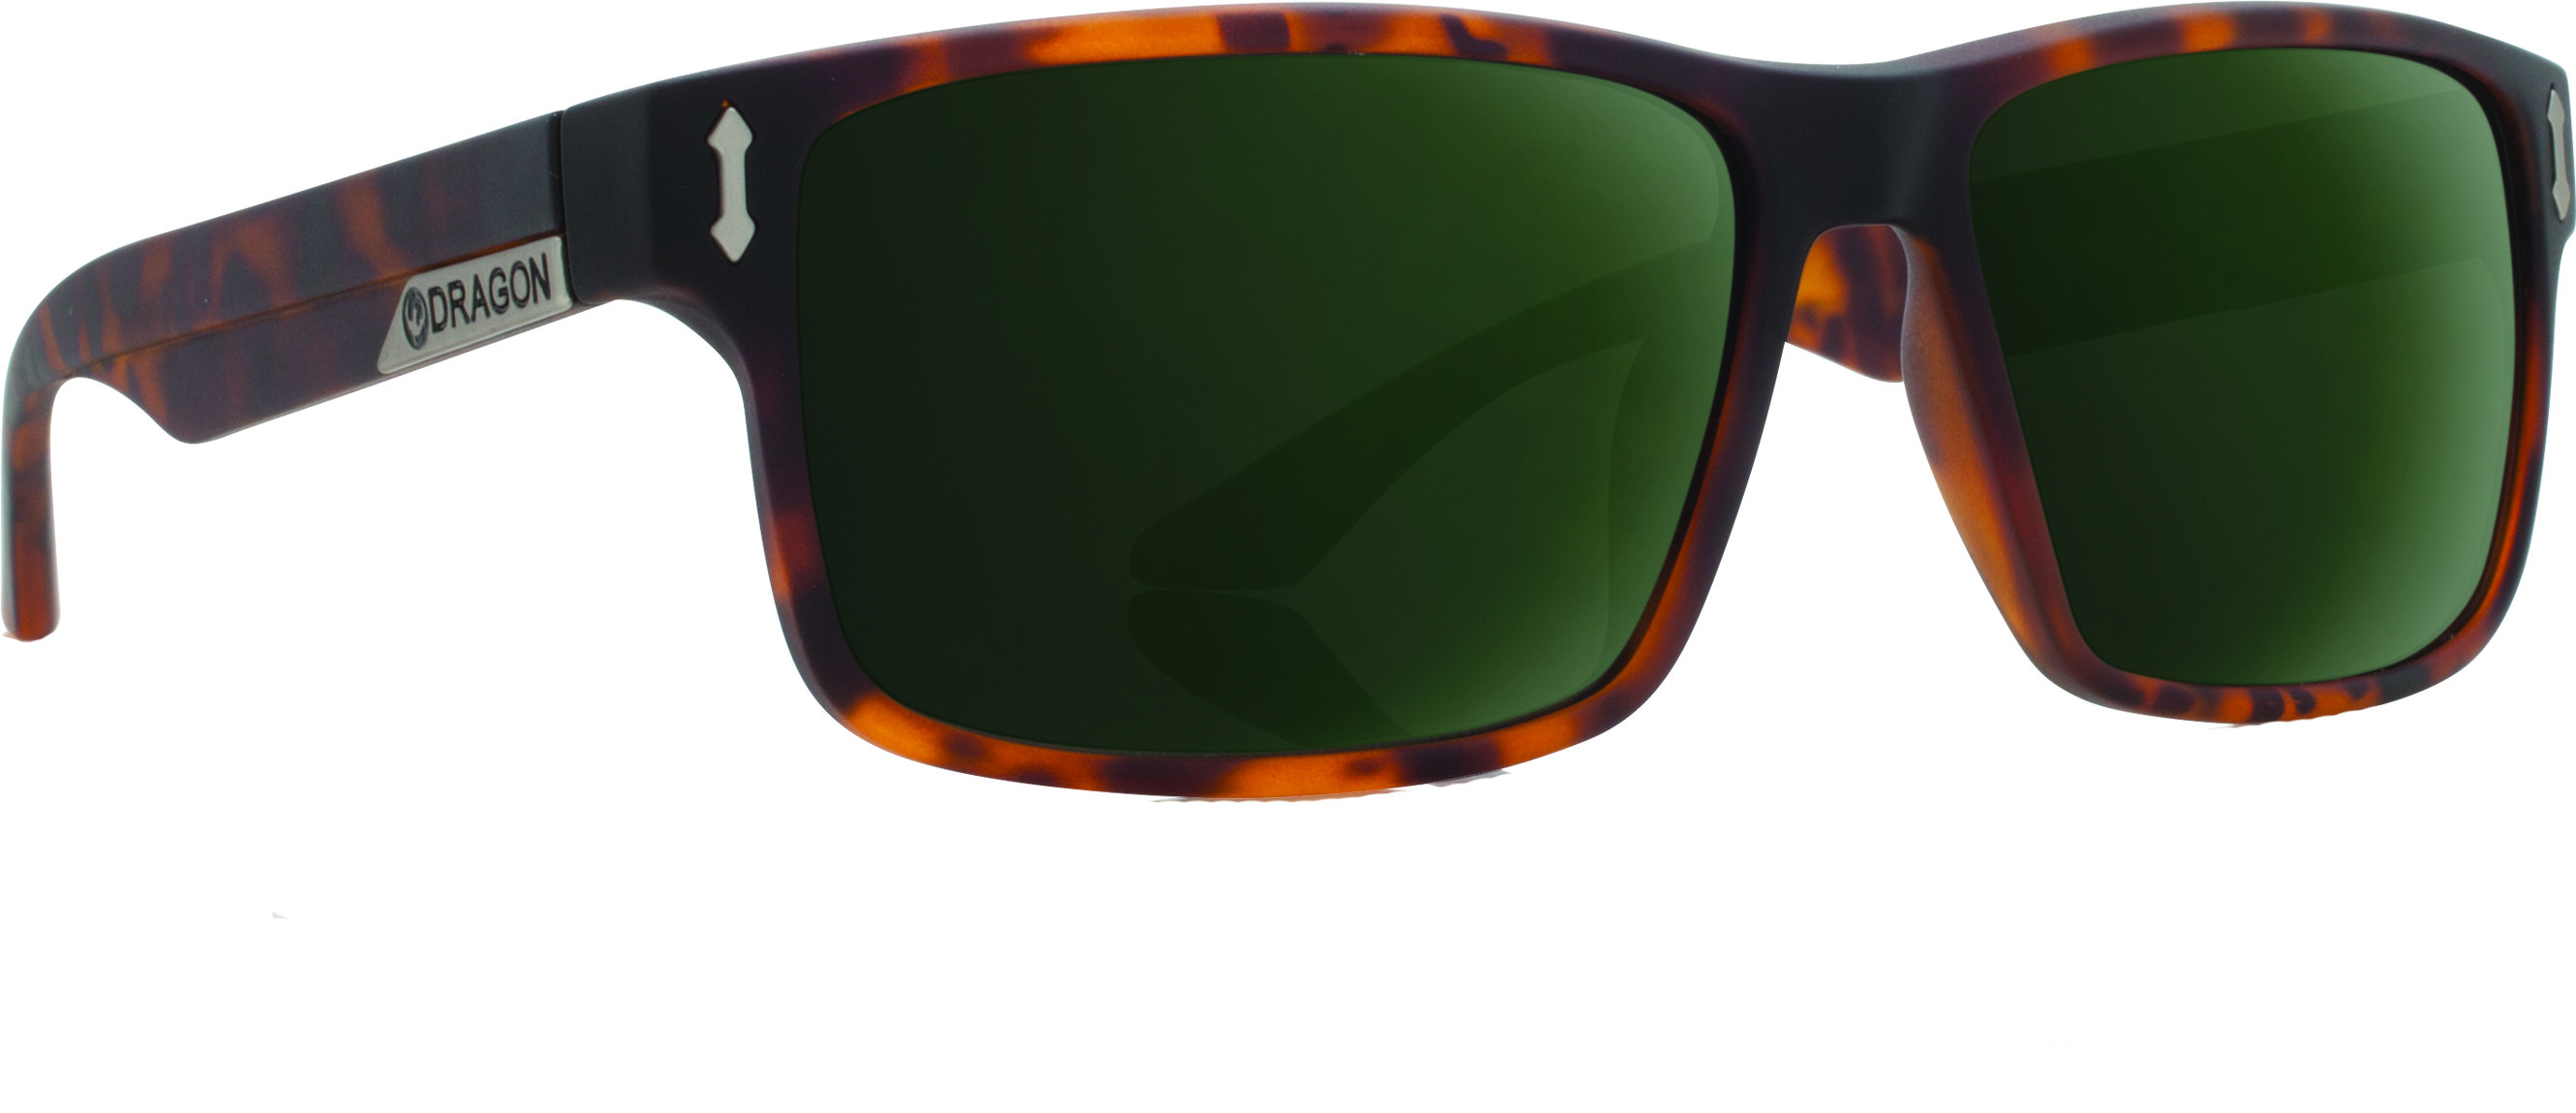 Count Sunglasses Matte Tortoise W/G15 Green Lens